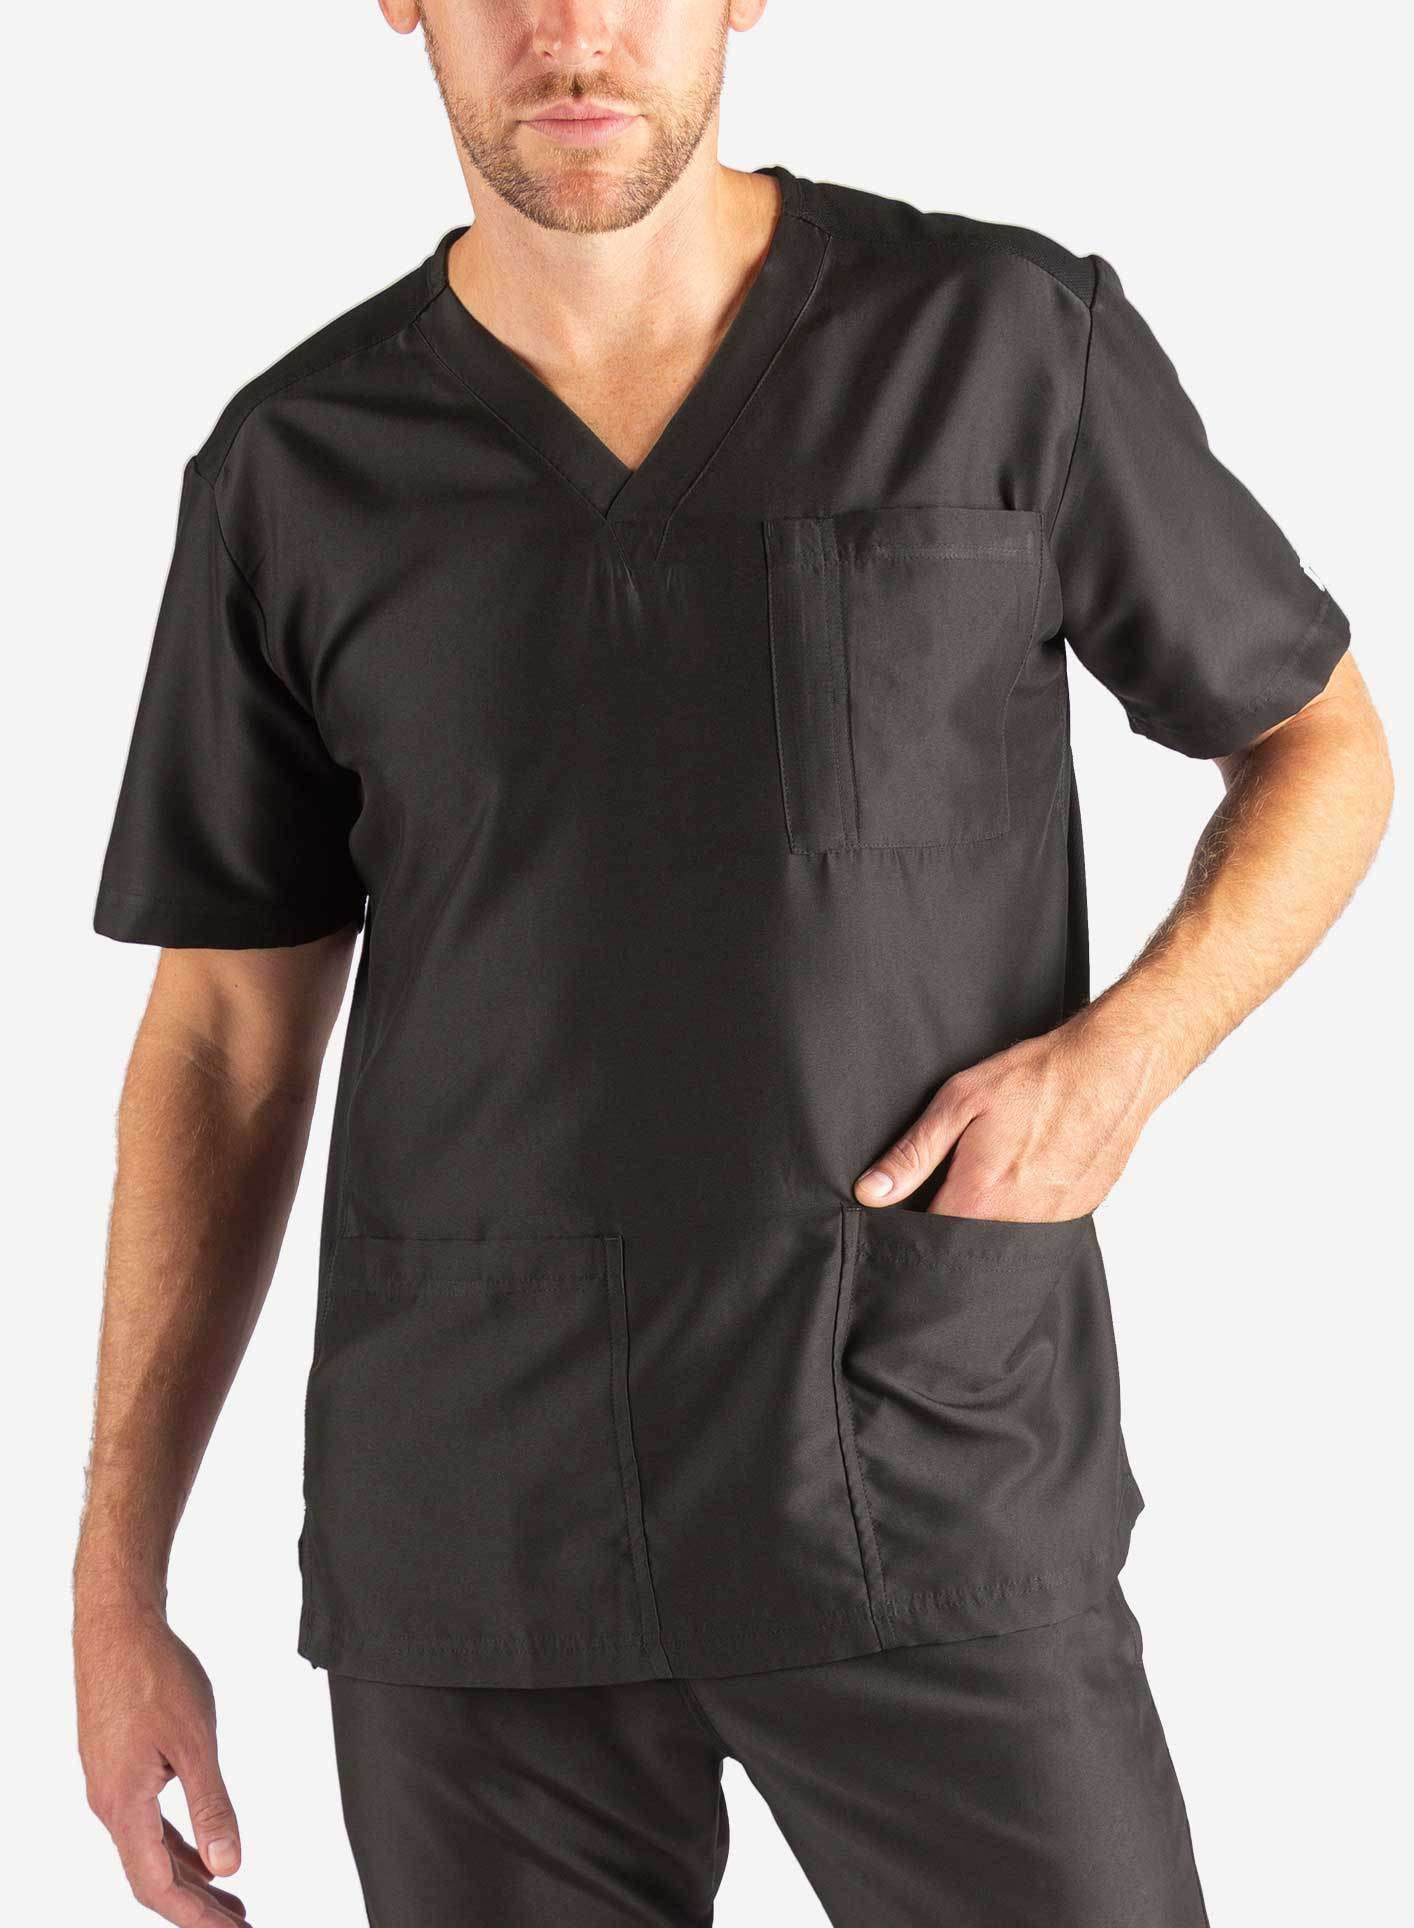 Men's 3 Pocket Scrub Top in Black Front